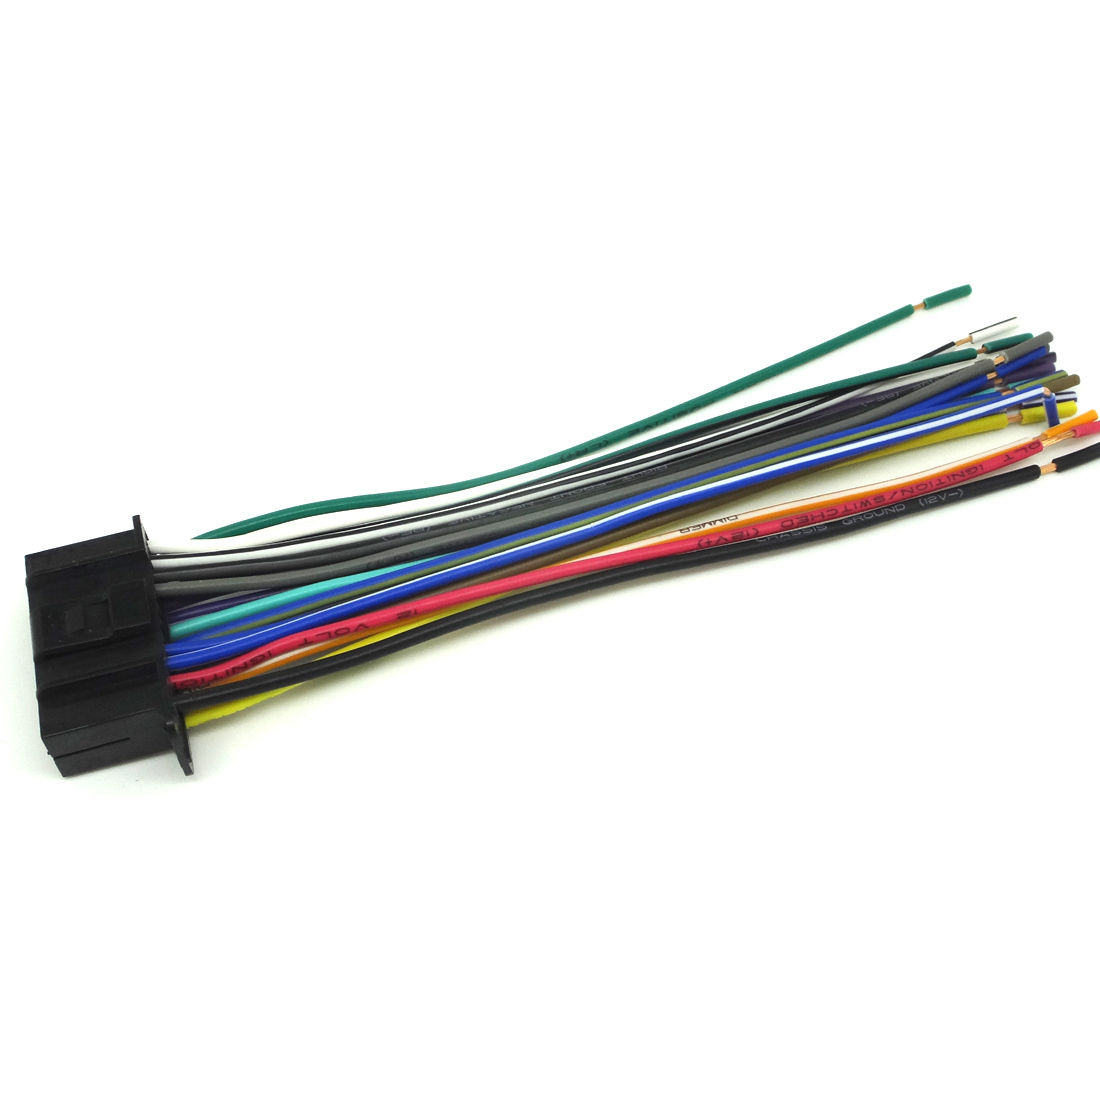 wire harness wiring harness 22 pin for kenwood dnx 7000ex. Black Bedroom Furniture Sets. Home Design Ideas